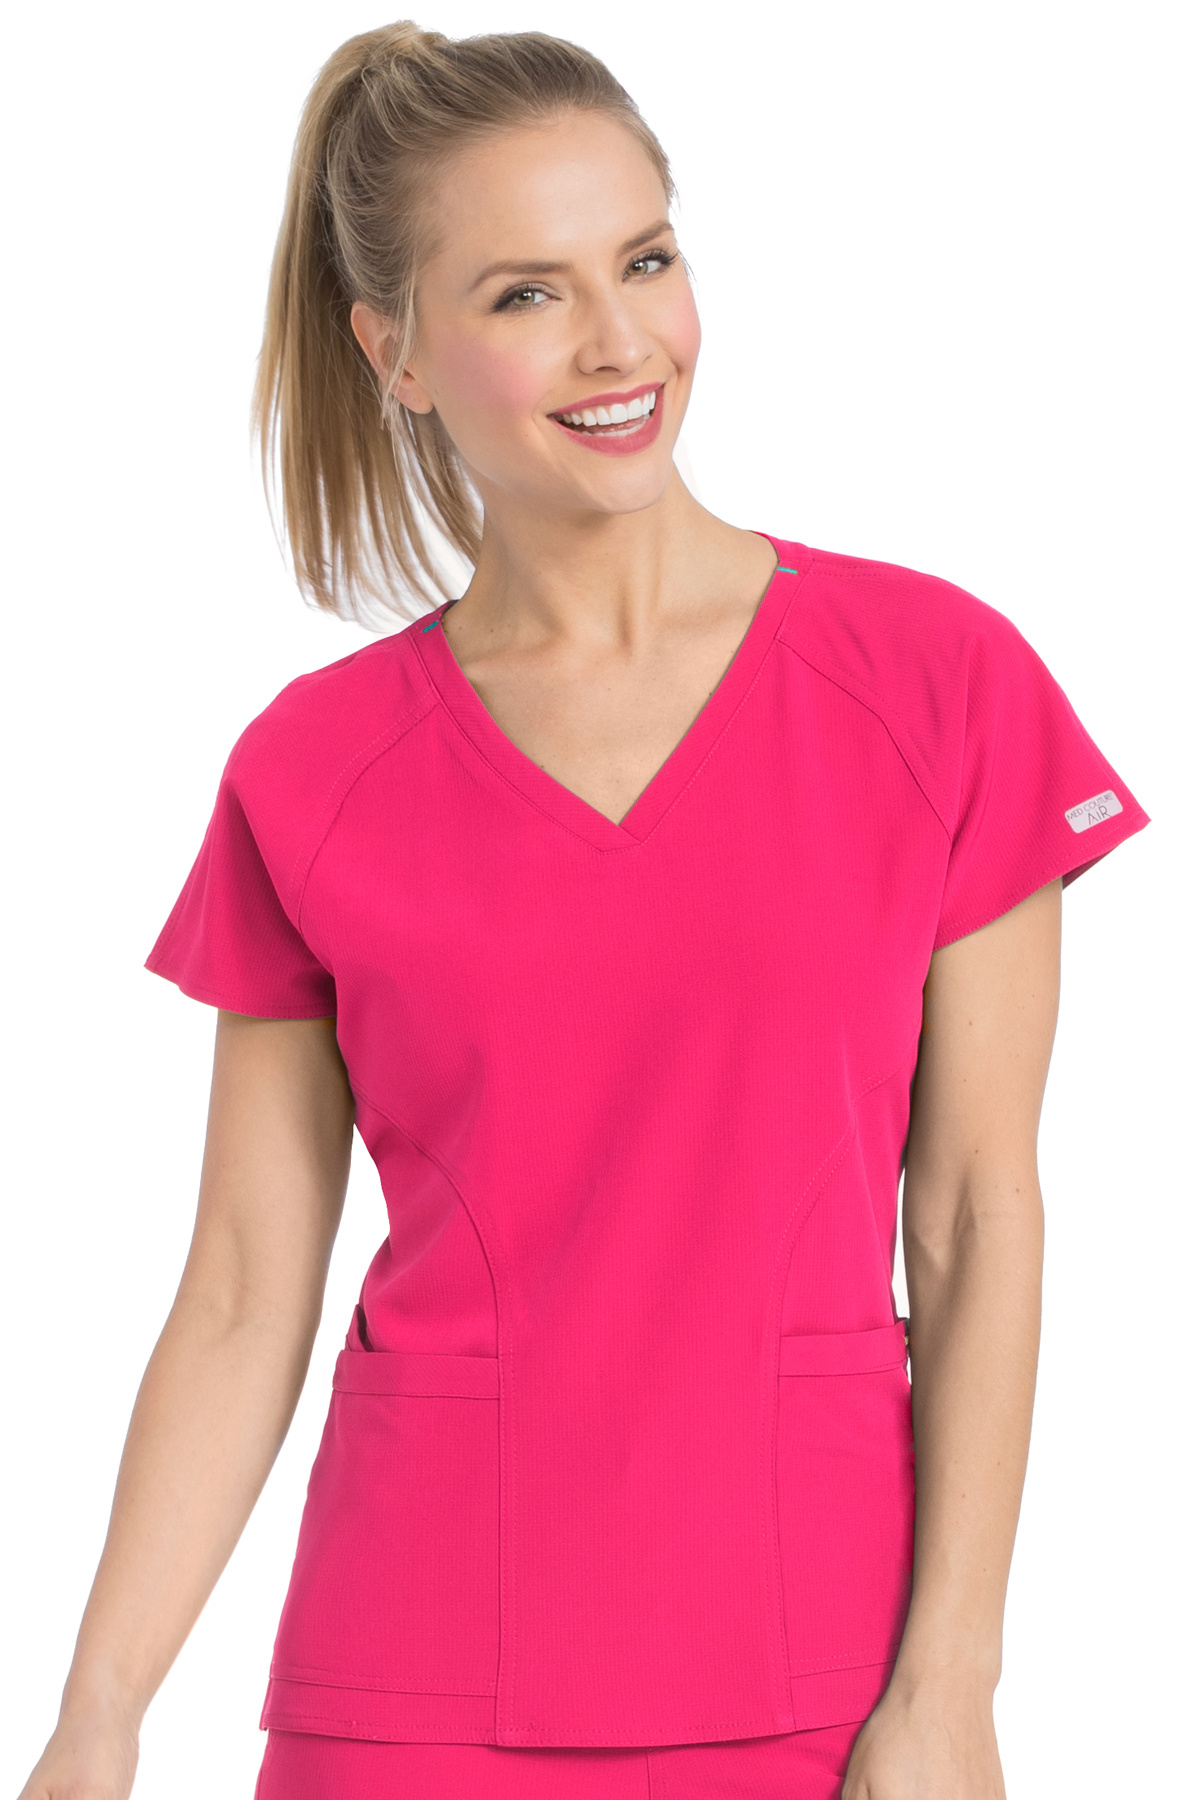 New Med Couture Scrub Work AIR Women/'s Sky High Tops V-Neck Pocket #8537